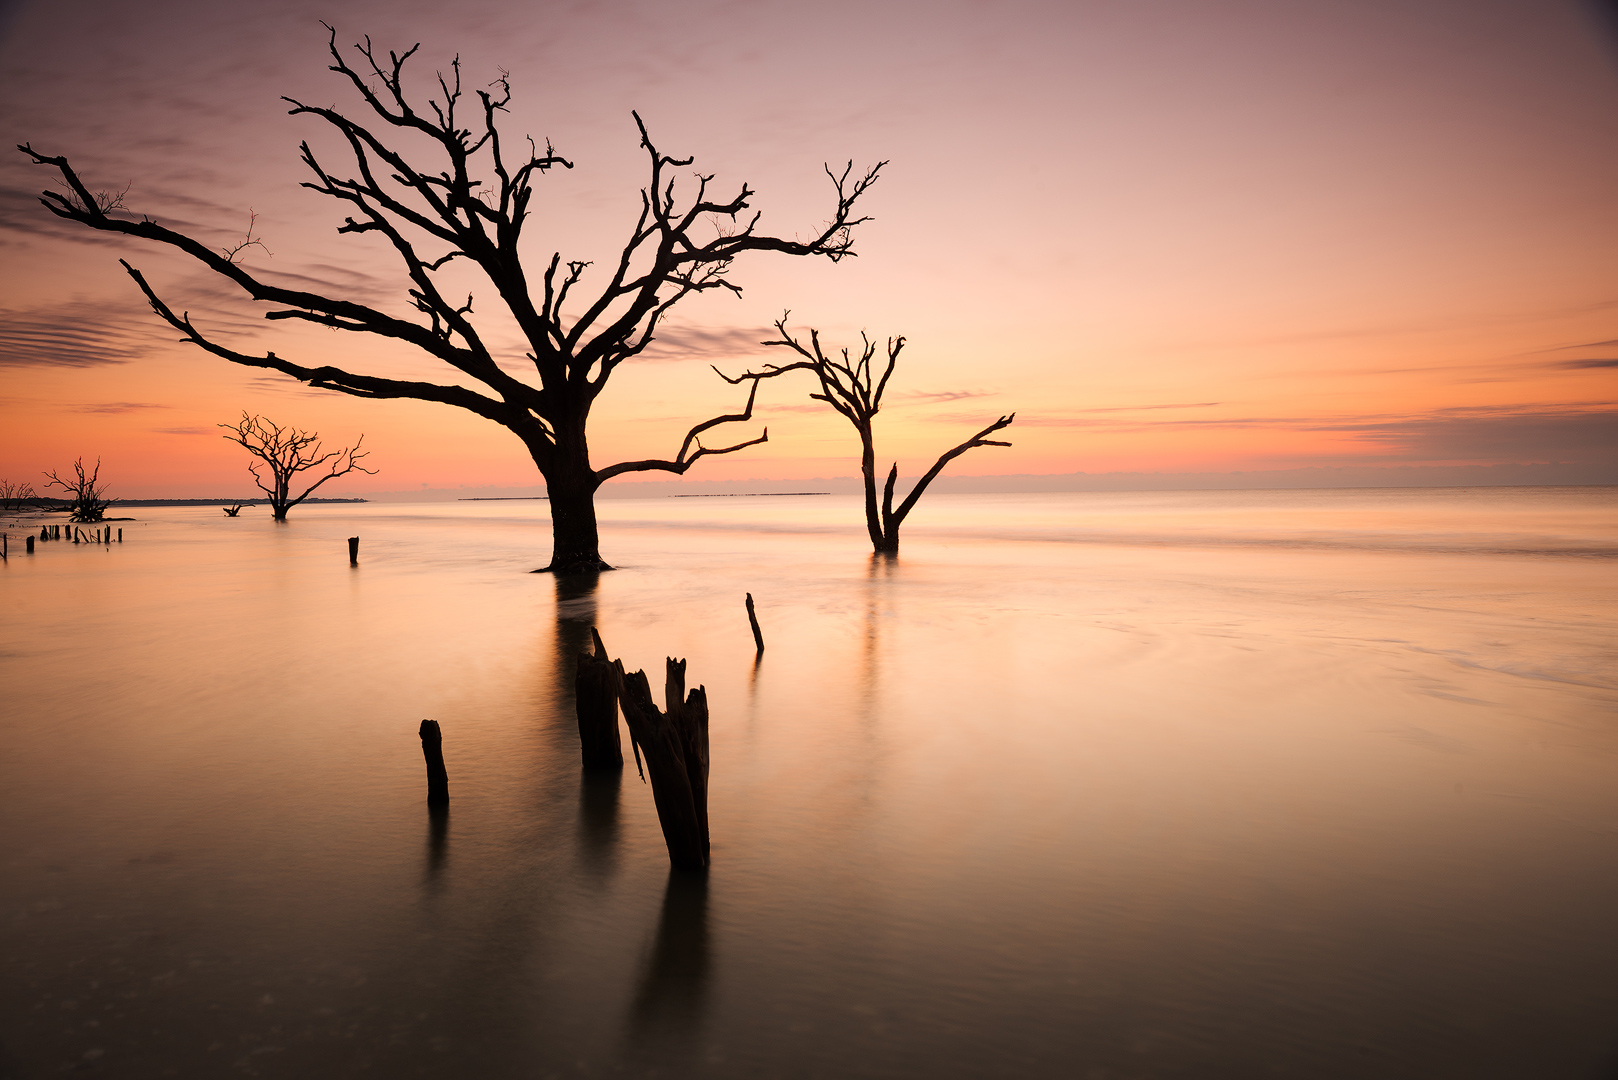 Boneyard Beach, Edisto Island, South Carolina, atlantic, sand, coast, sunrise, trees, dead, water, salt, charleston, plantation, botany bay, bernard chen, timescapes, photo